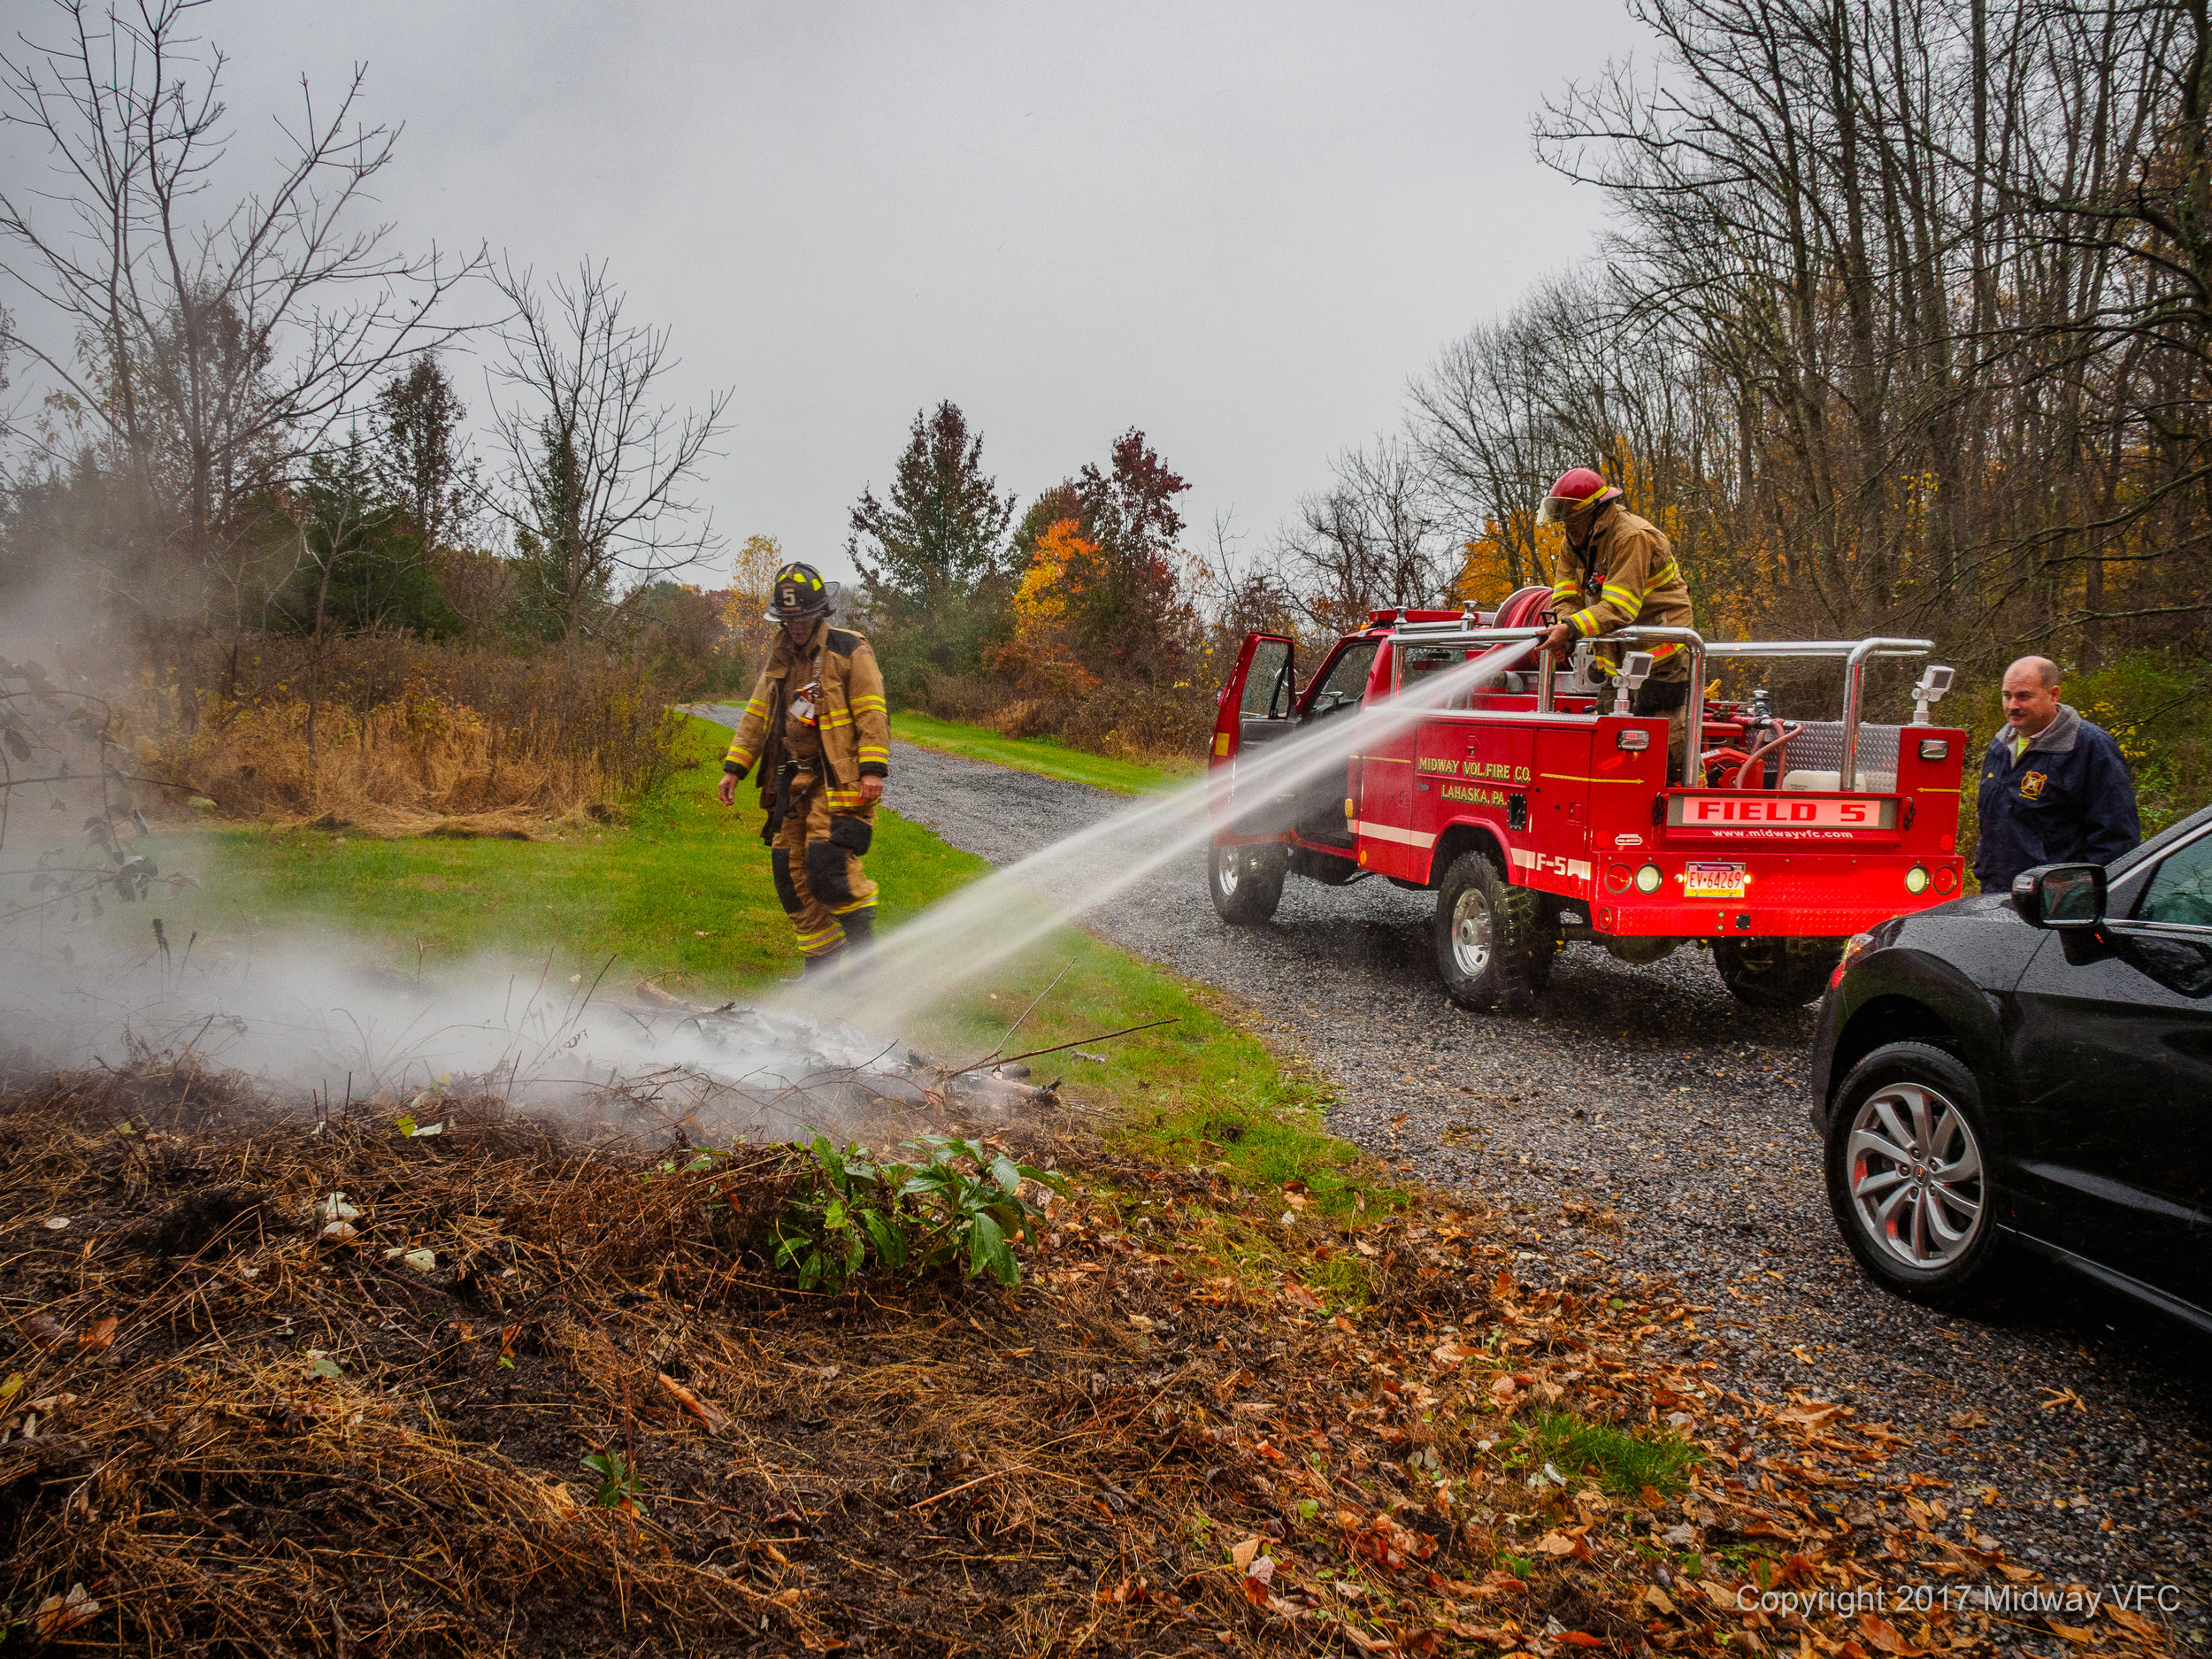 2017.11.07 at 3:42PM Midway Volunteer Fire Company responded to the report of a brush fire on Pineville Road. The team quickly put out the fire. No additional property was damaged. There were no injuries to first responders.